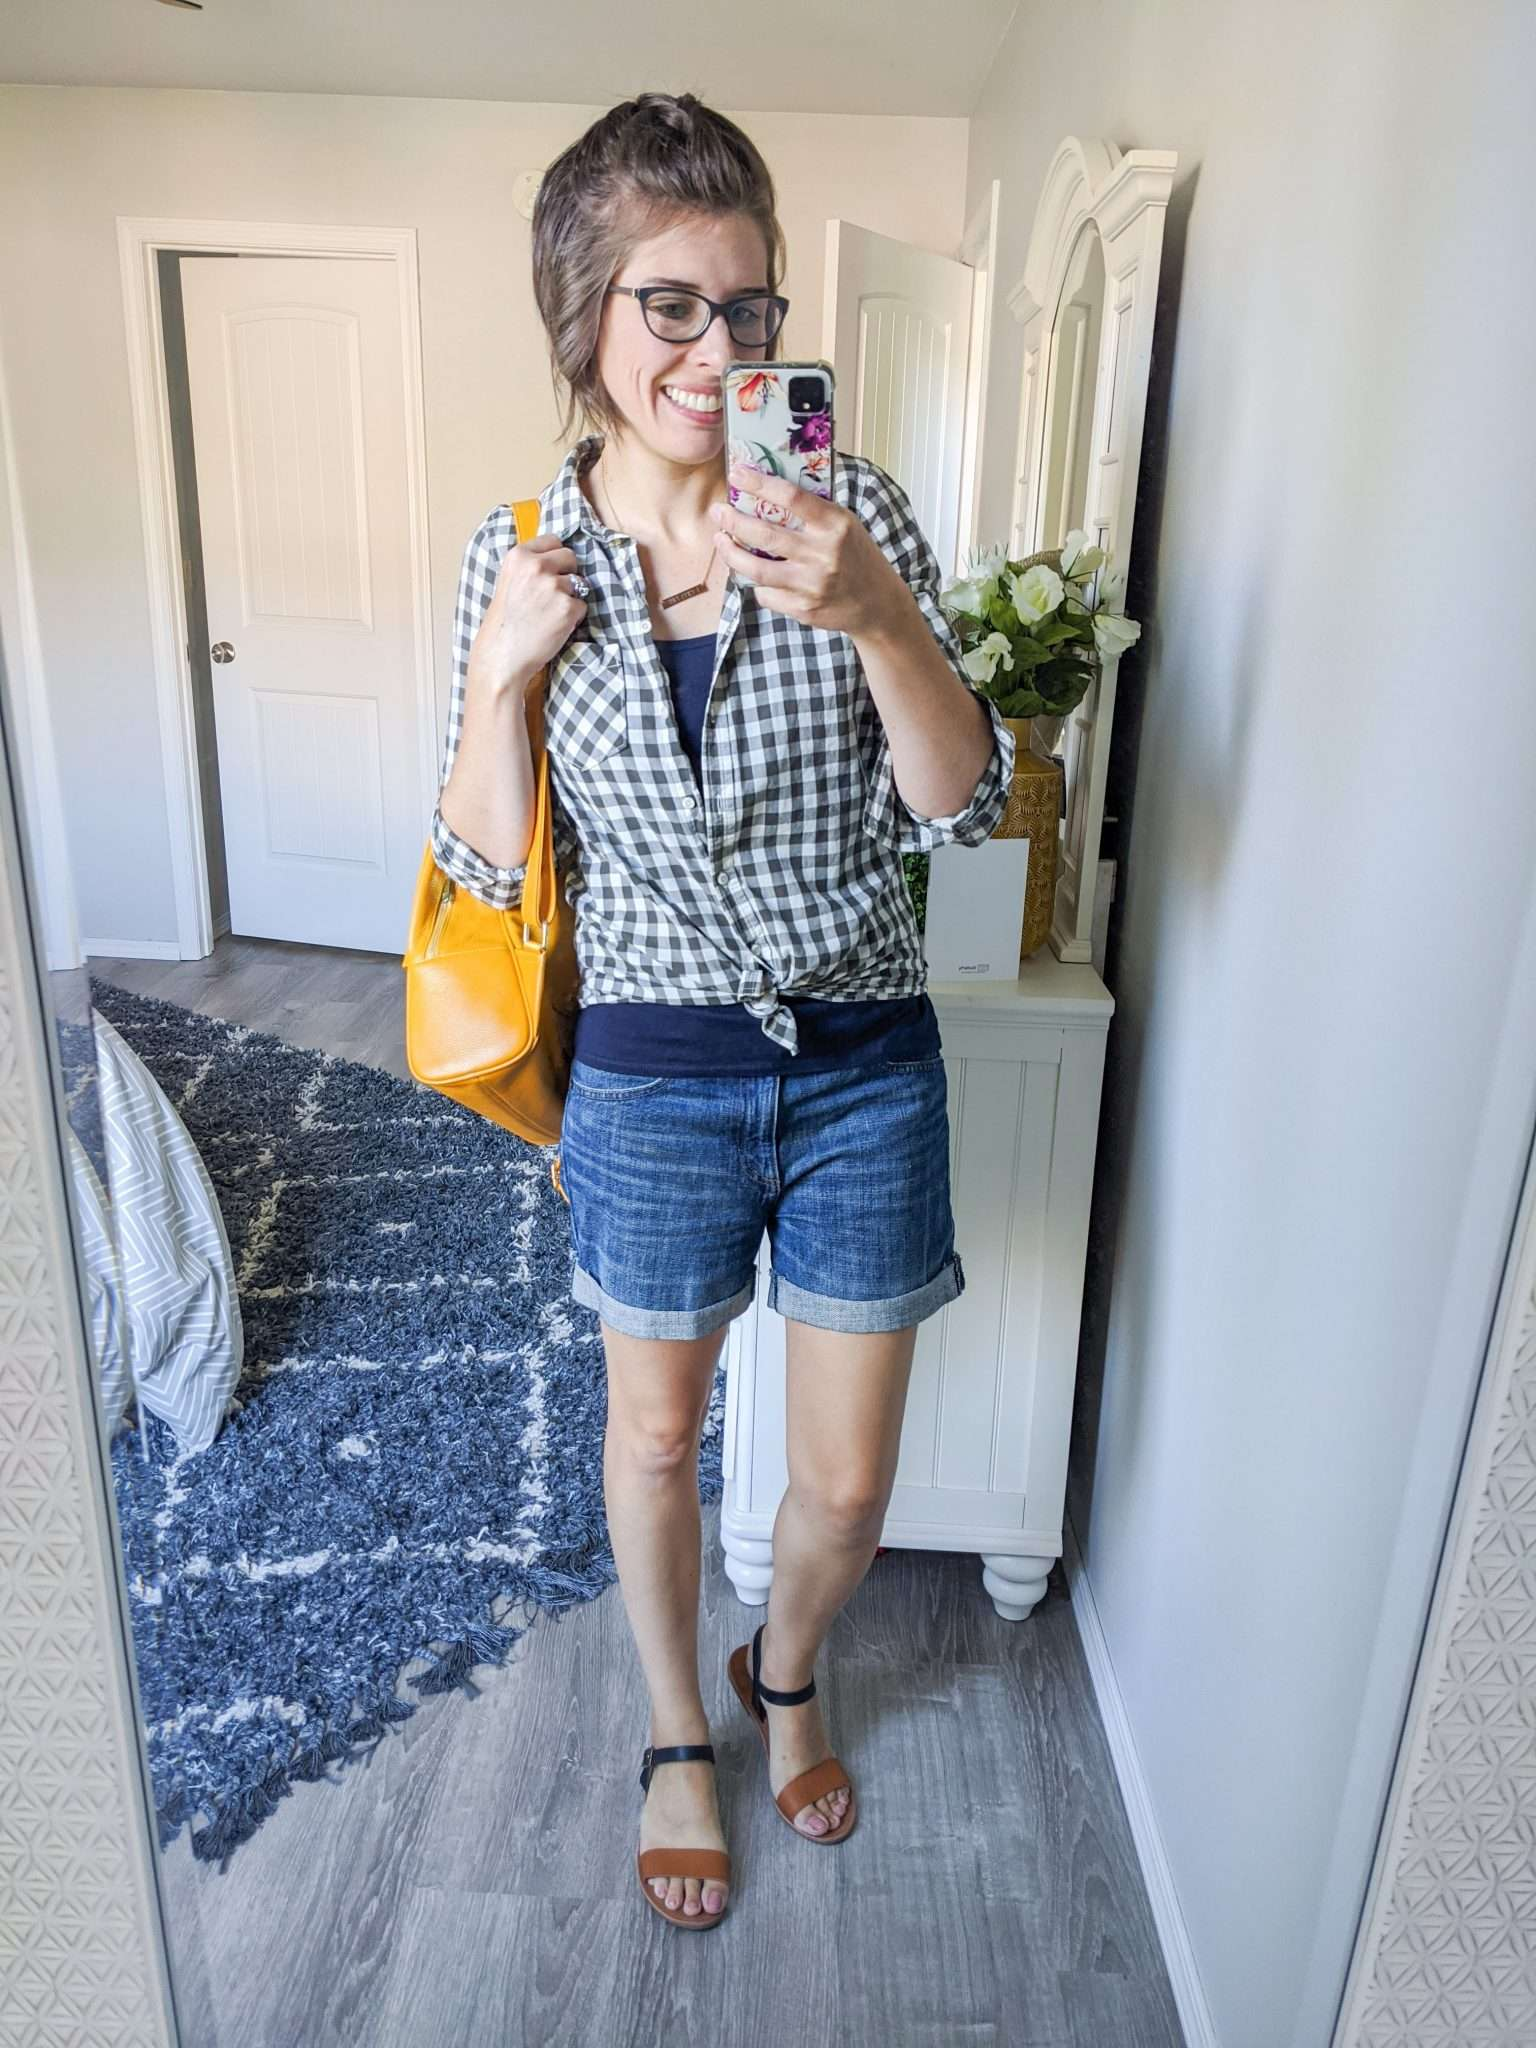 Summer to Fall transition outfits - How to transition summer clothes to fall - Gingham plaid button downs and leather give fall vibes